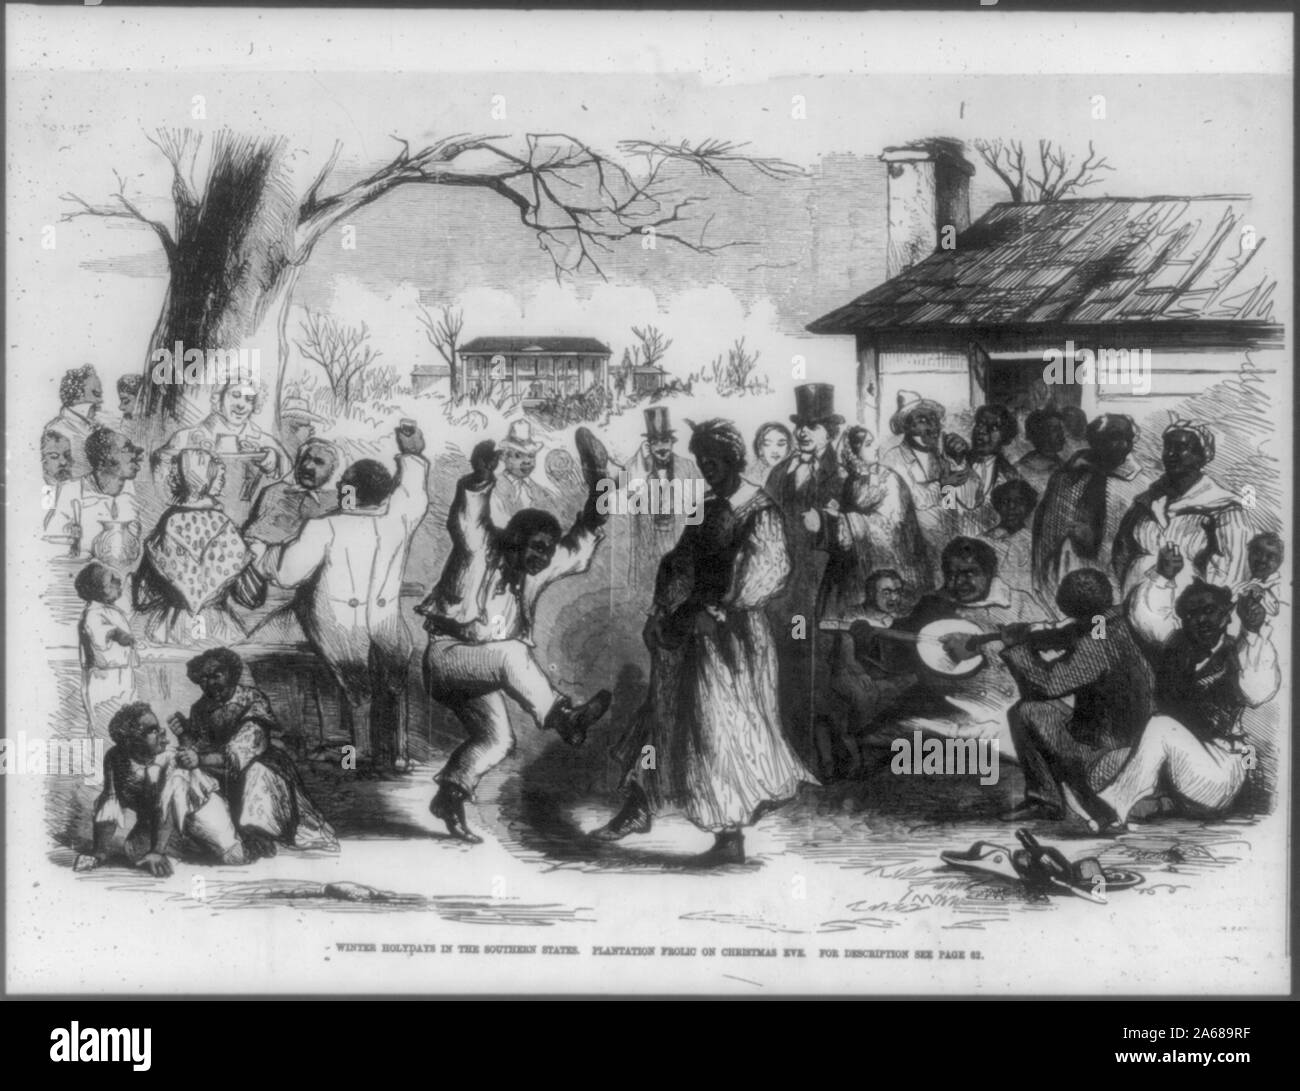 Winter holidays in the southern states. Plantation frolic on Christmas Eve Stock Photo